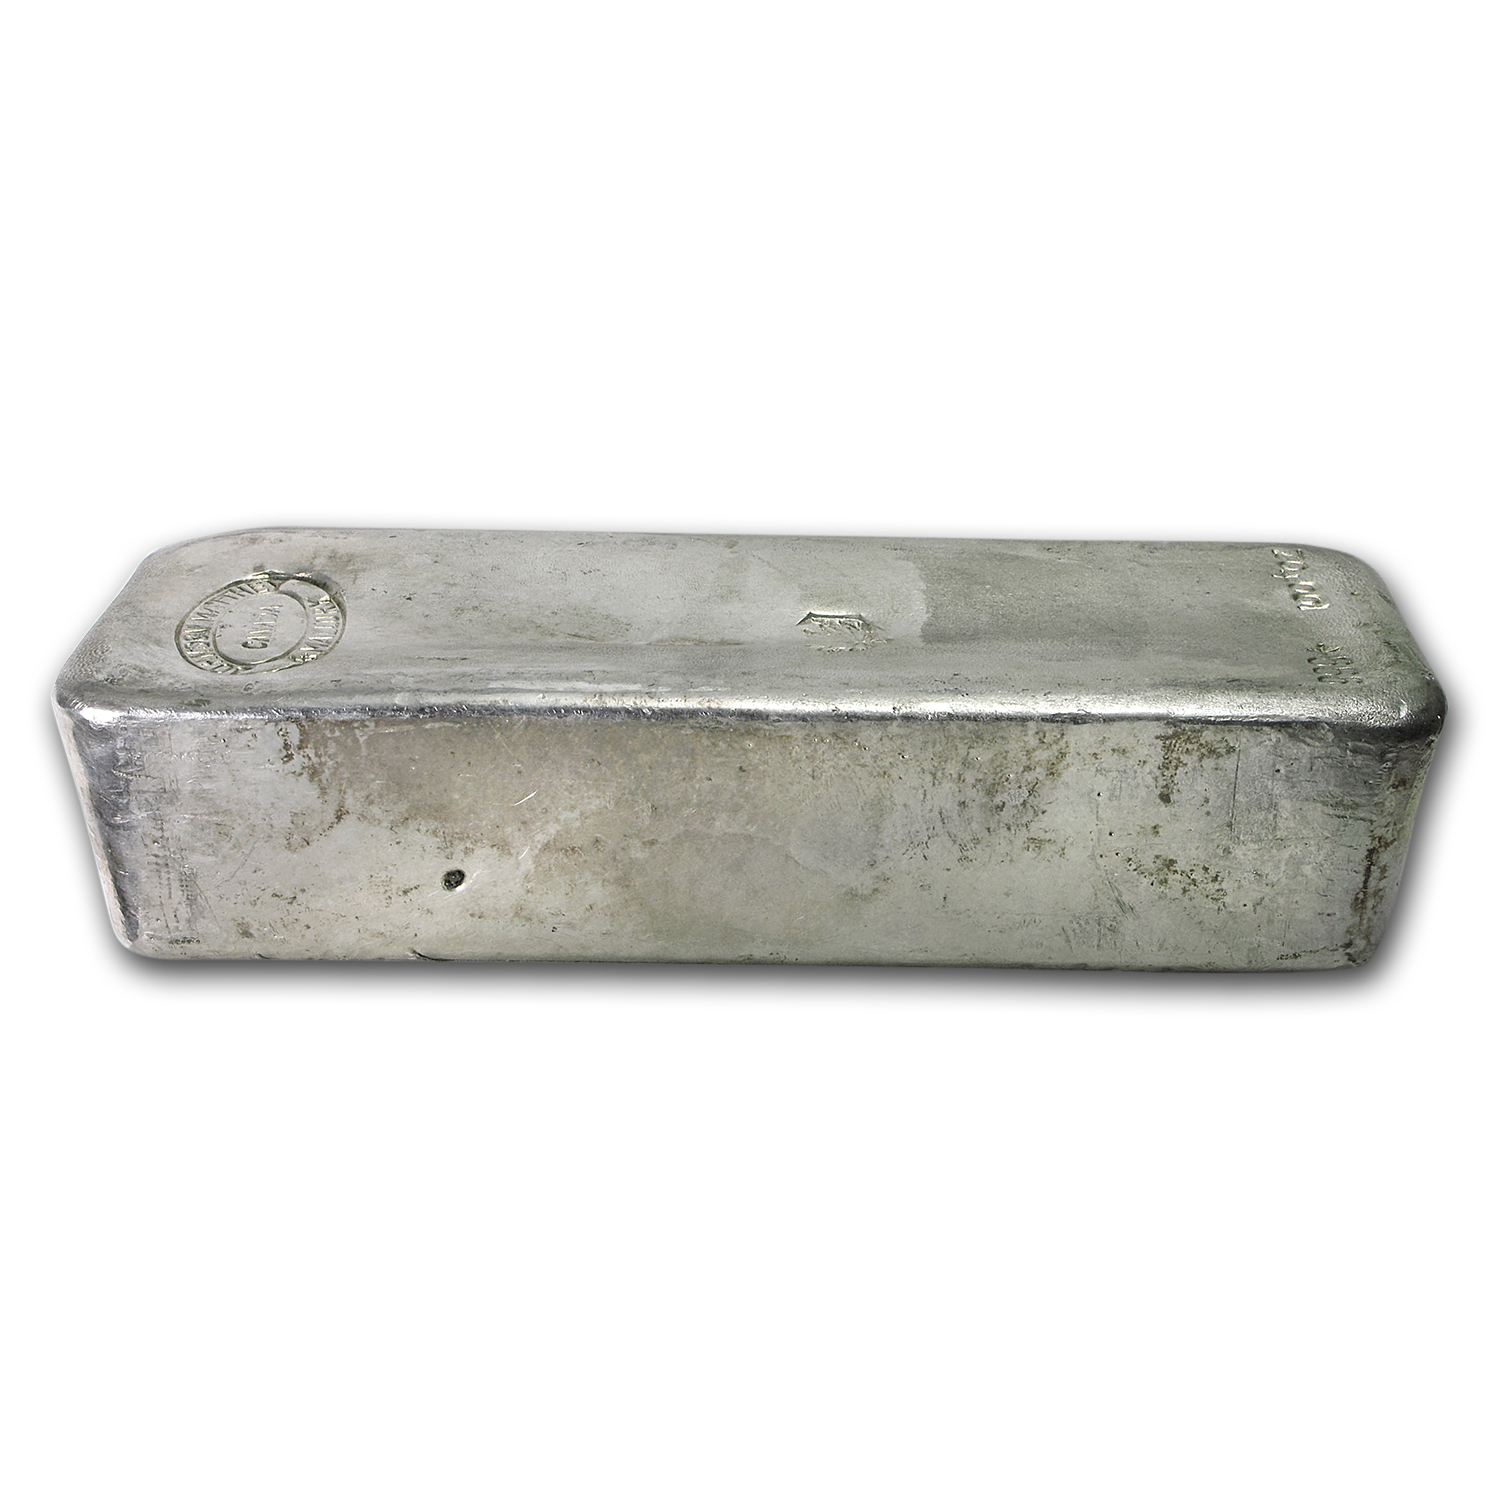 100 oz Silver Bar - Johnson Matthey & Mallory (Maple Leaf)